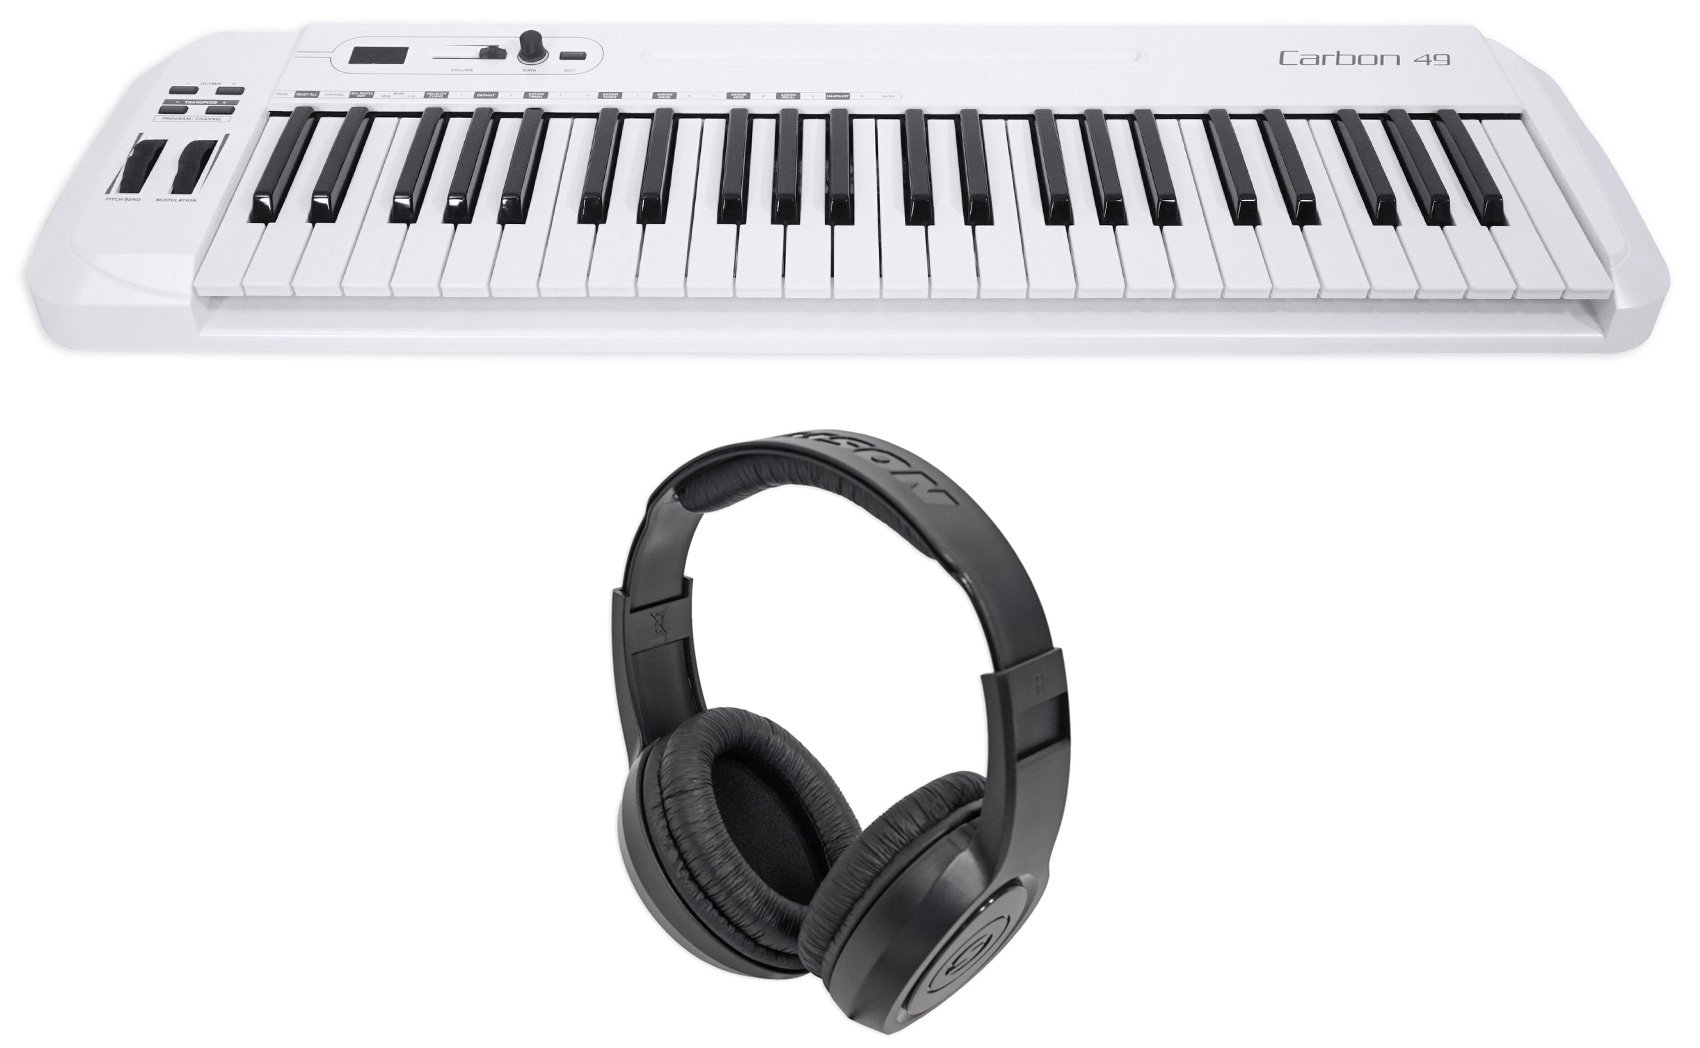 Samson Carbon 49 Key USB MIDI DJ Keyboard Controller+Software+Headphones by Samson Technologies